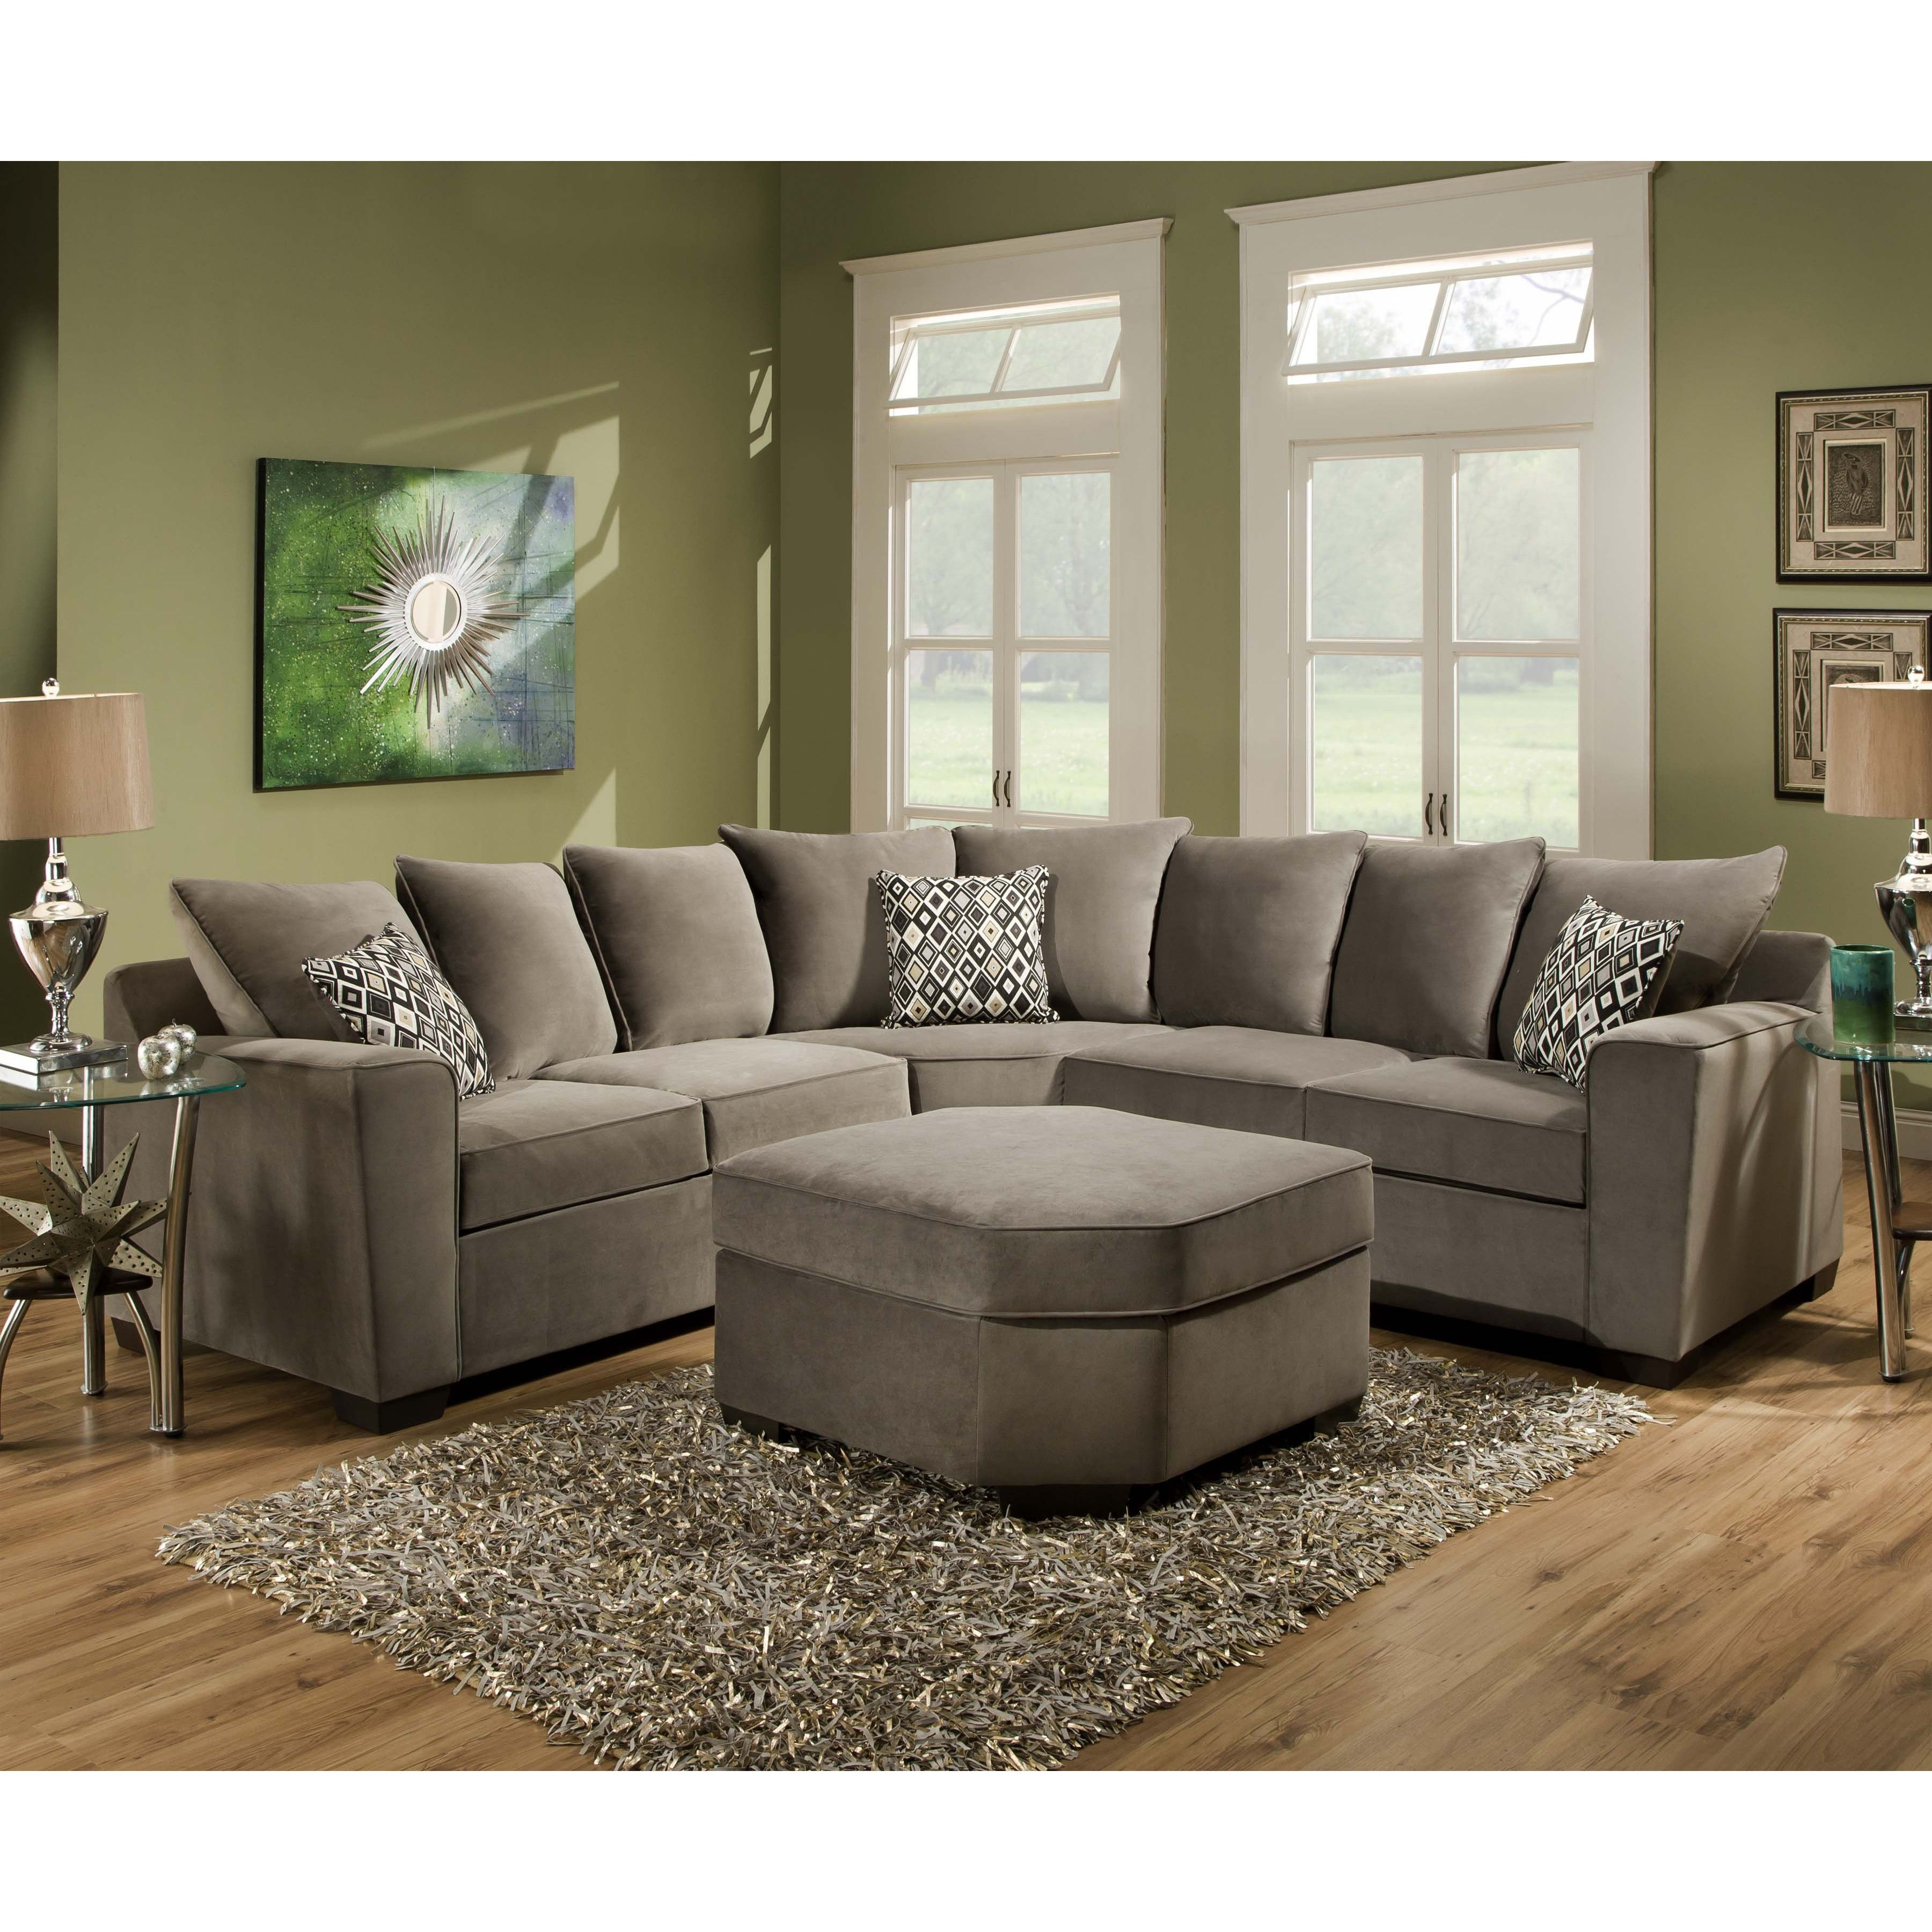 awesome L Shaped Couch With Recliner Unique L Shaped Couch With